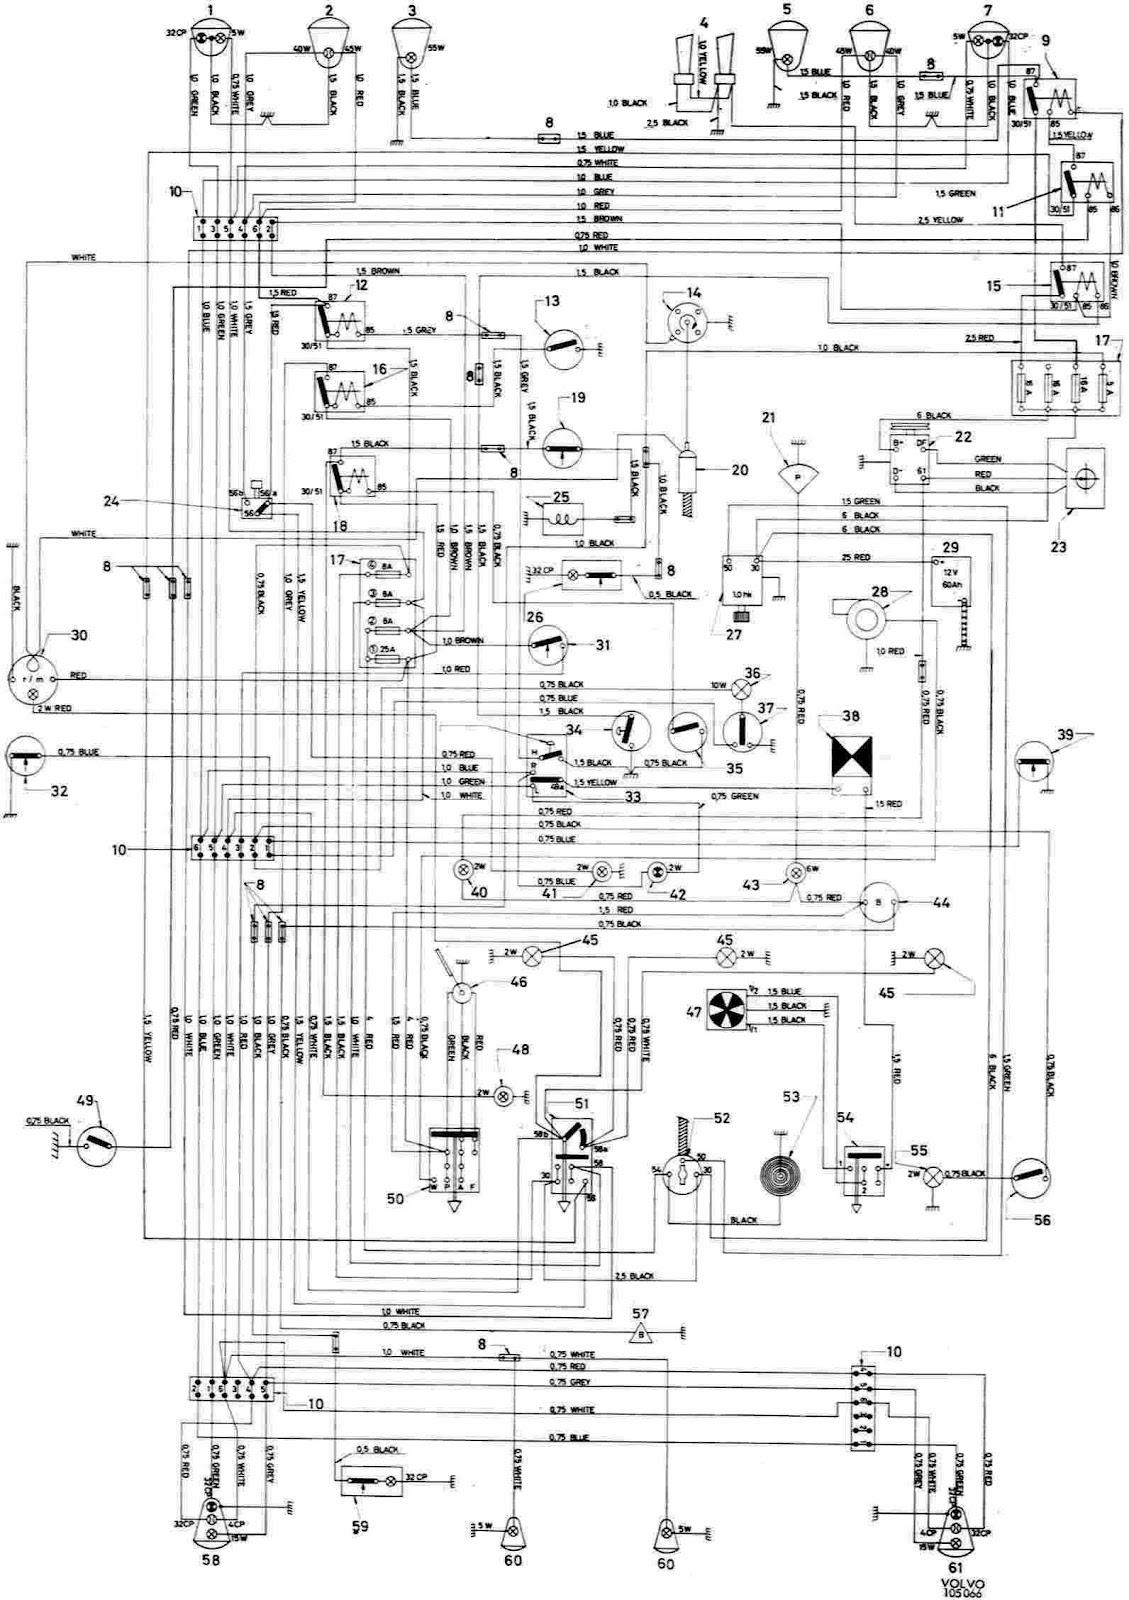 Volvo 123 GT Complete Wiring Diagram | All about Wiring Diagrams